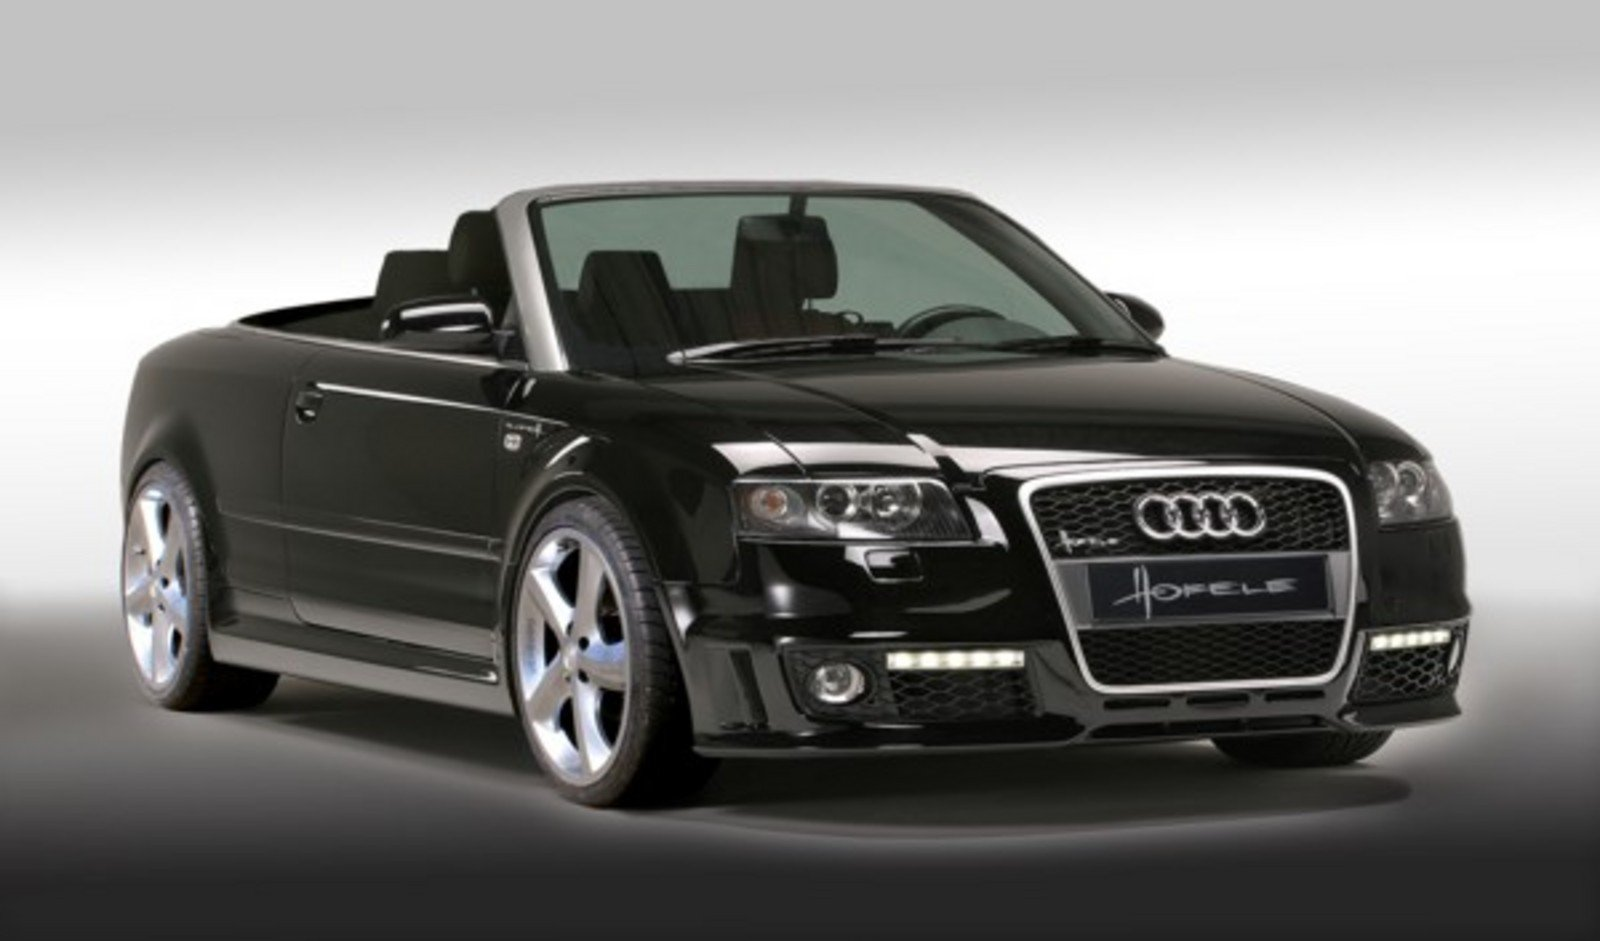 hofele updates audi a4 cabrio with rs4 look news top speed. Black Bedroom Furniture Sets. Home Design Ideas